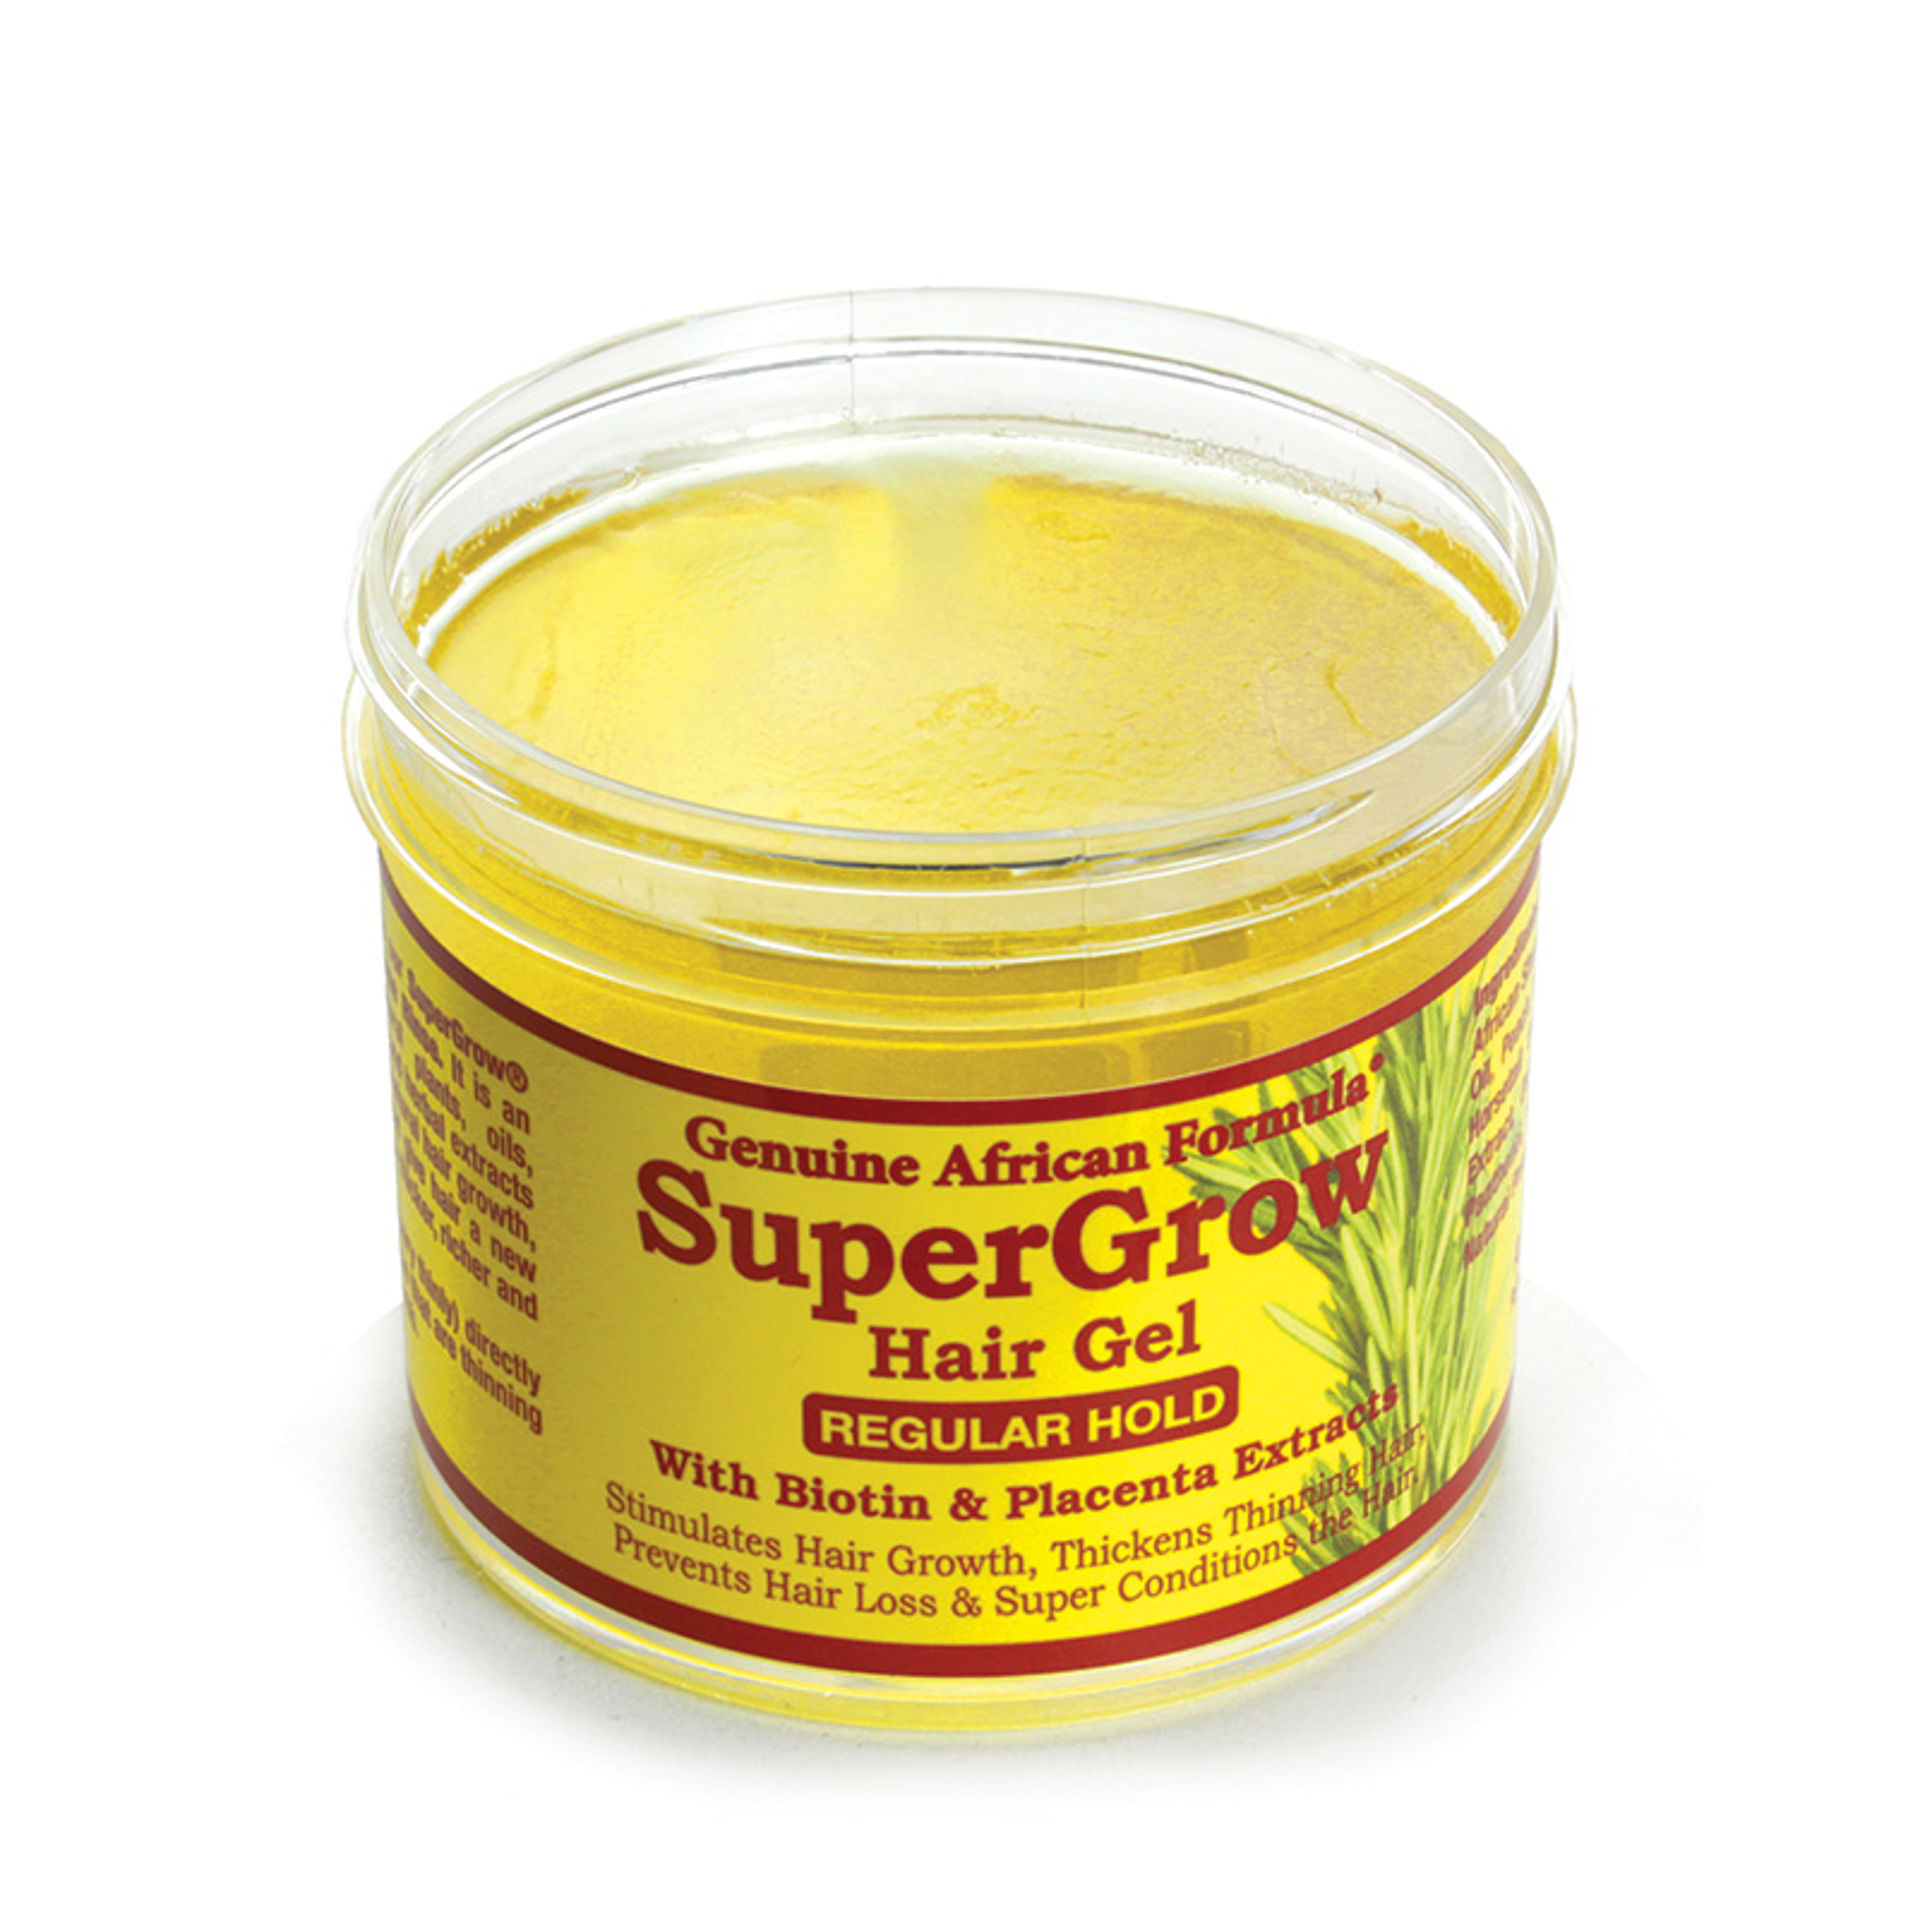 Picture of SuperGrow Hair Gel: Regular Hold - 4 oz.